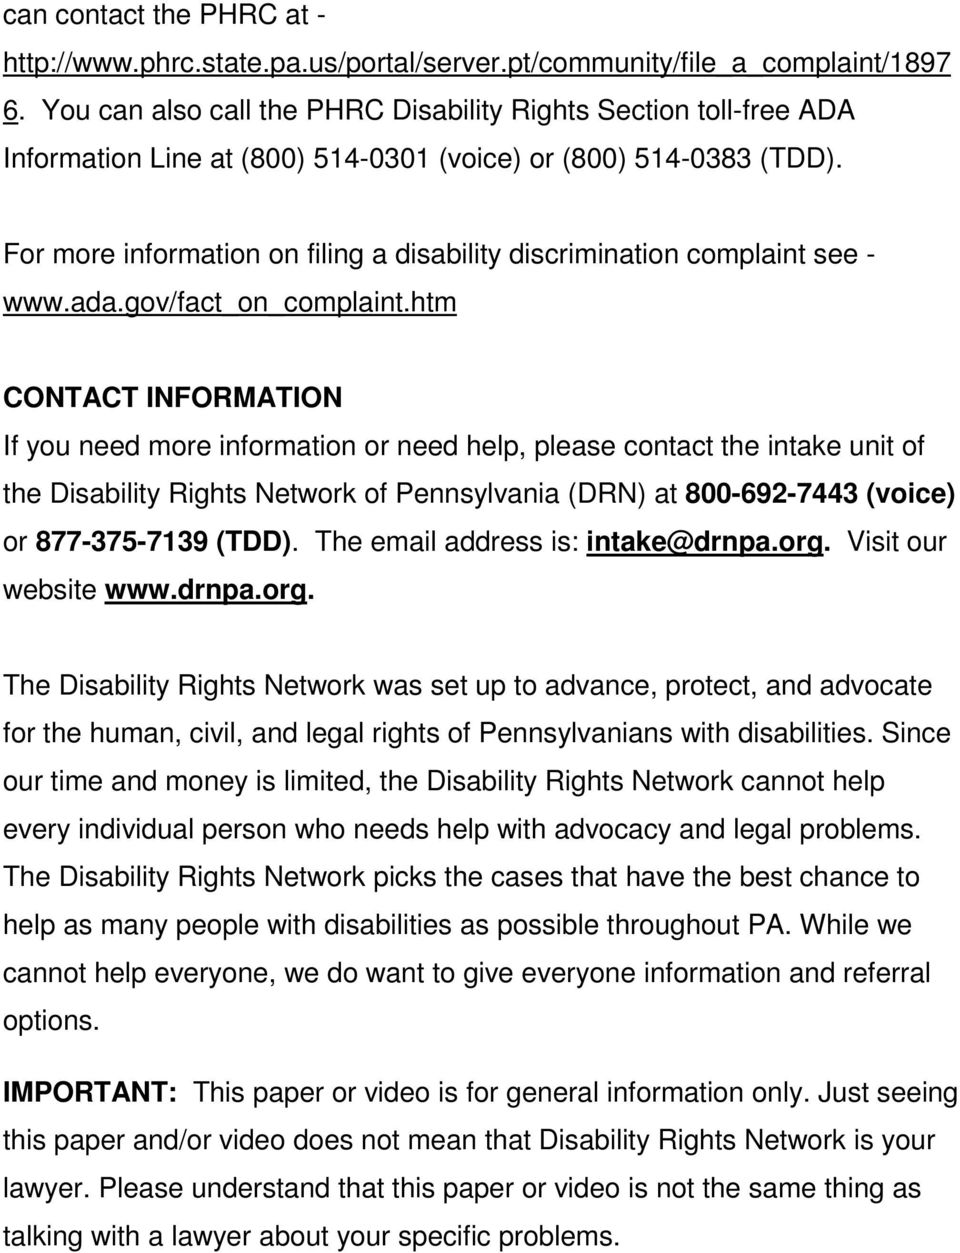 For more information on filing a disability discrimination complaint see - www.ada.gov/fact_on_complaint.